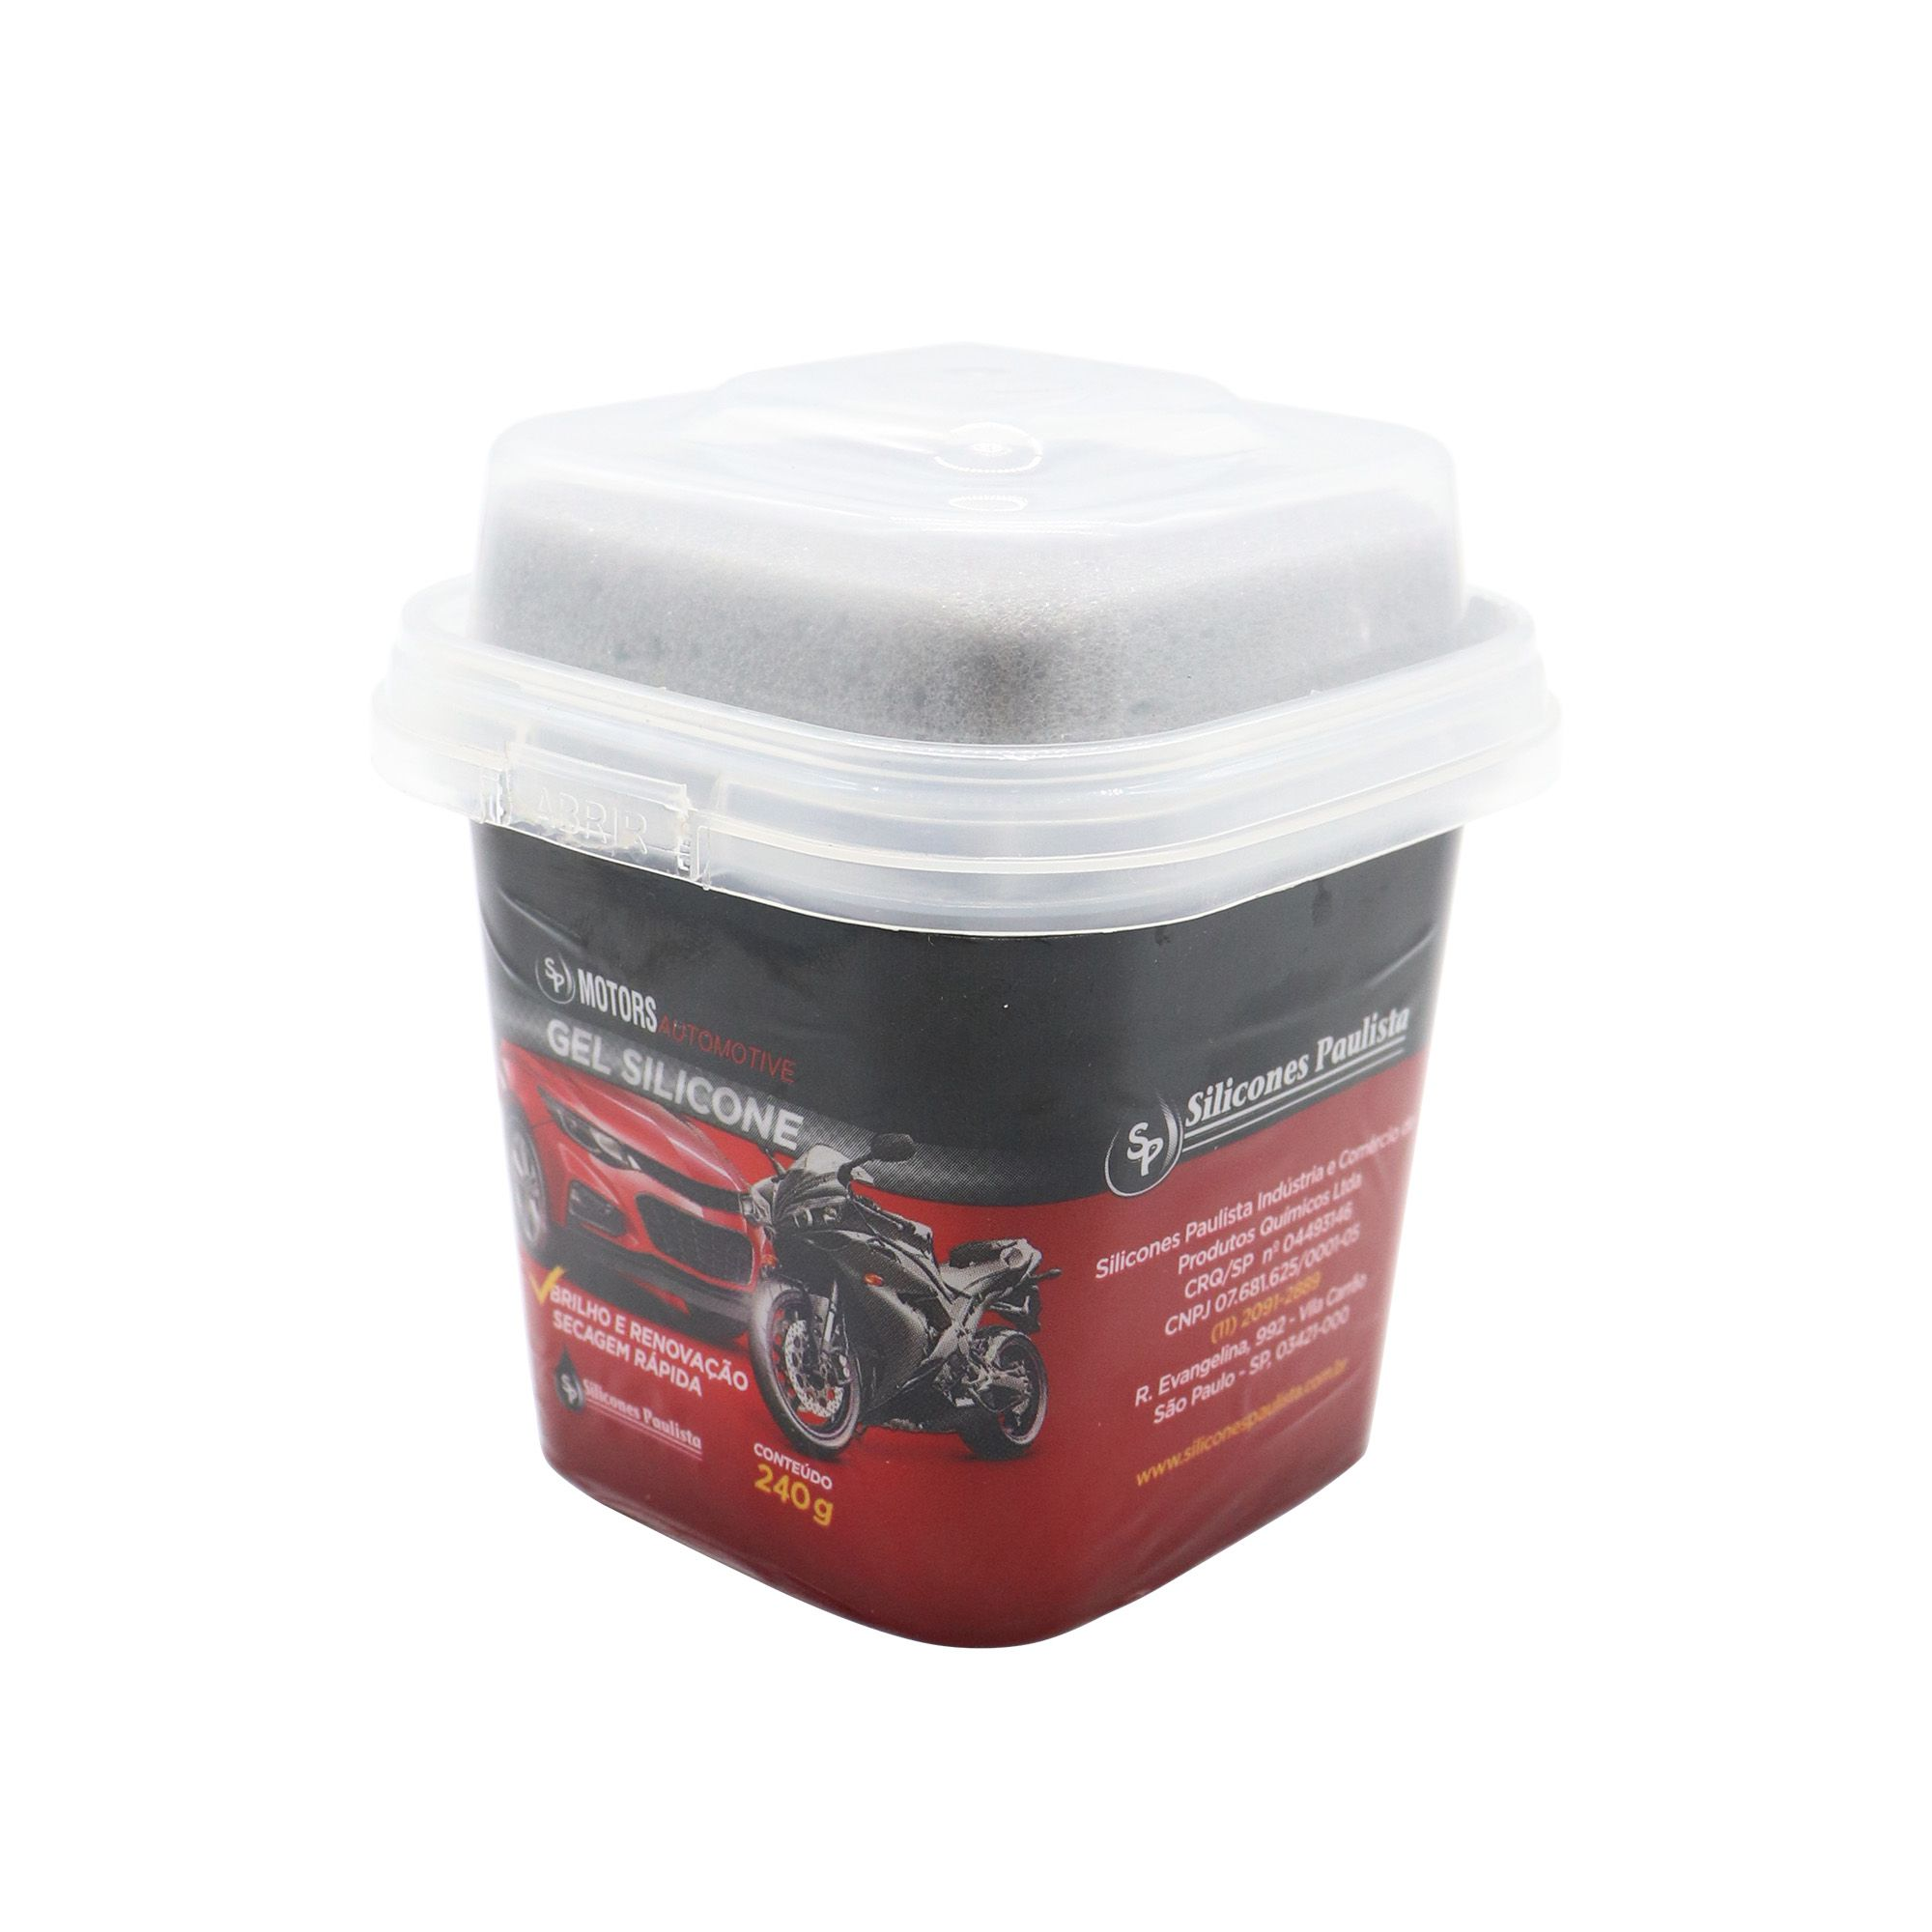 Gel de Silicone Automotivo - 240g